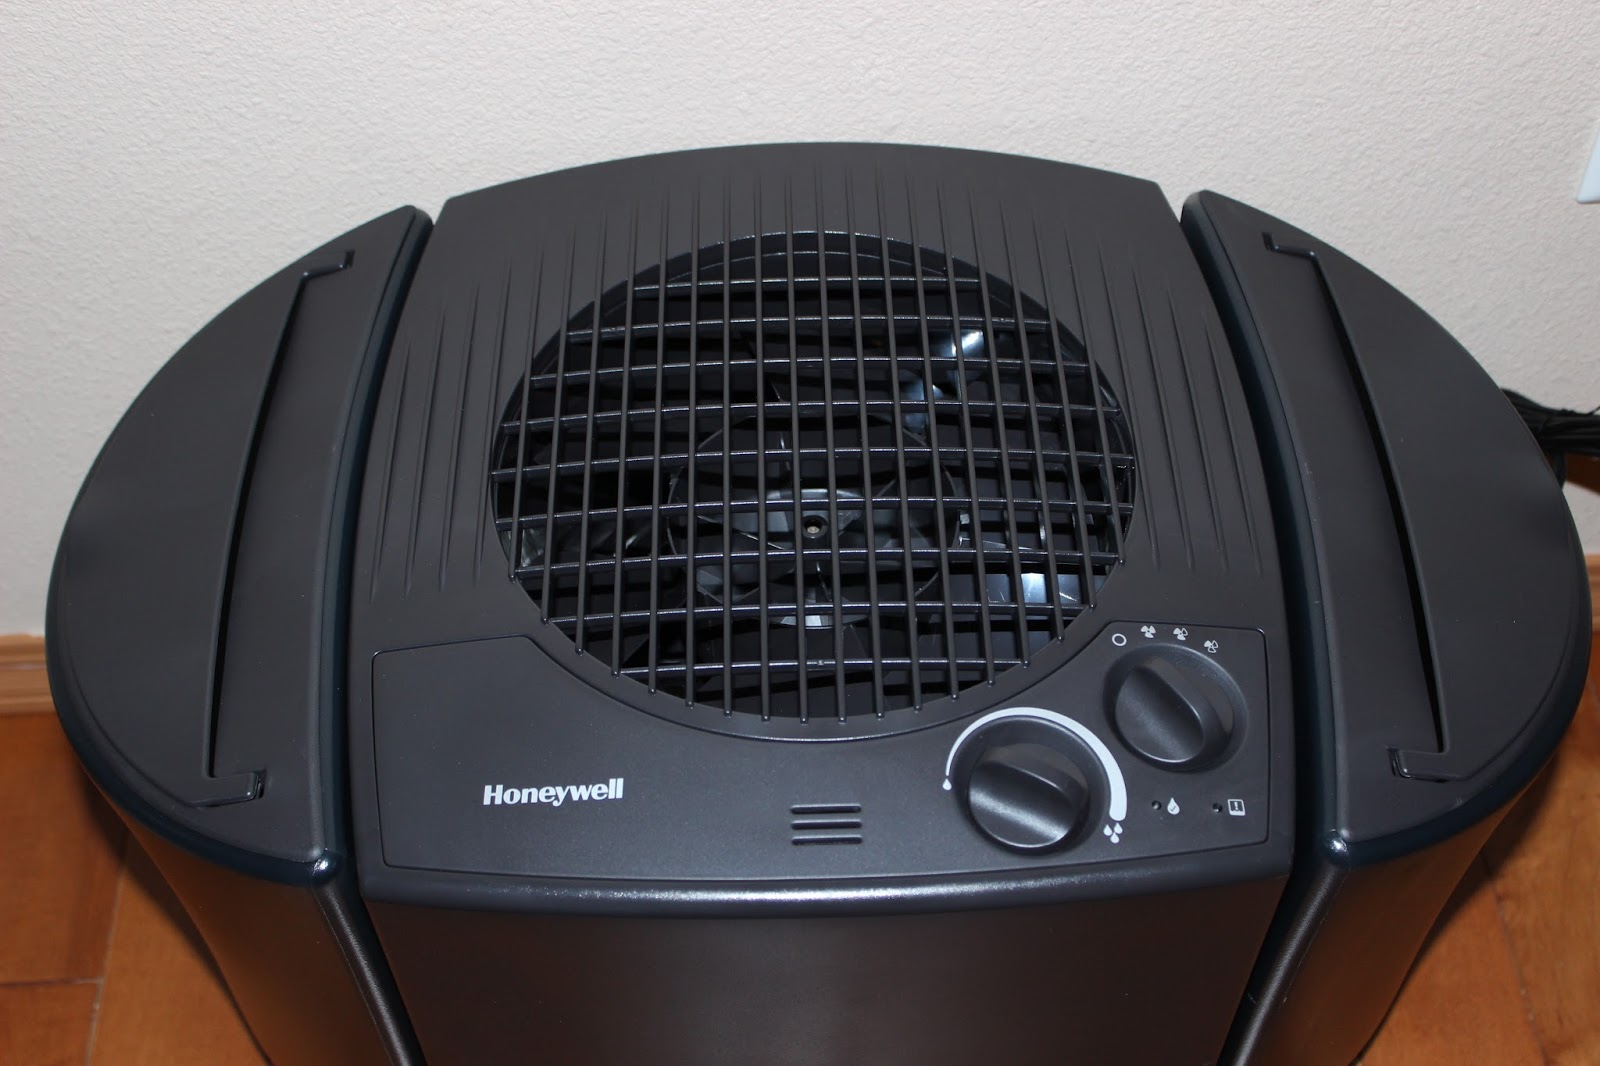 humidifier options as well as air purifiers and room or personal fans #7E4321